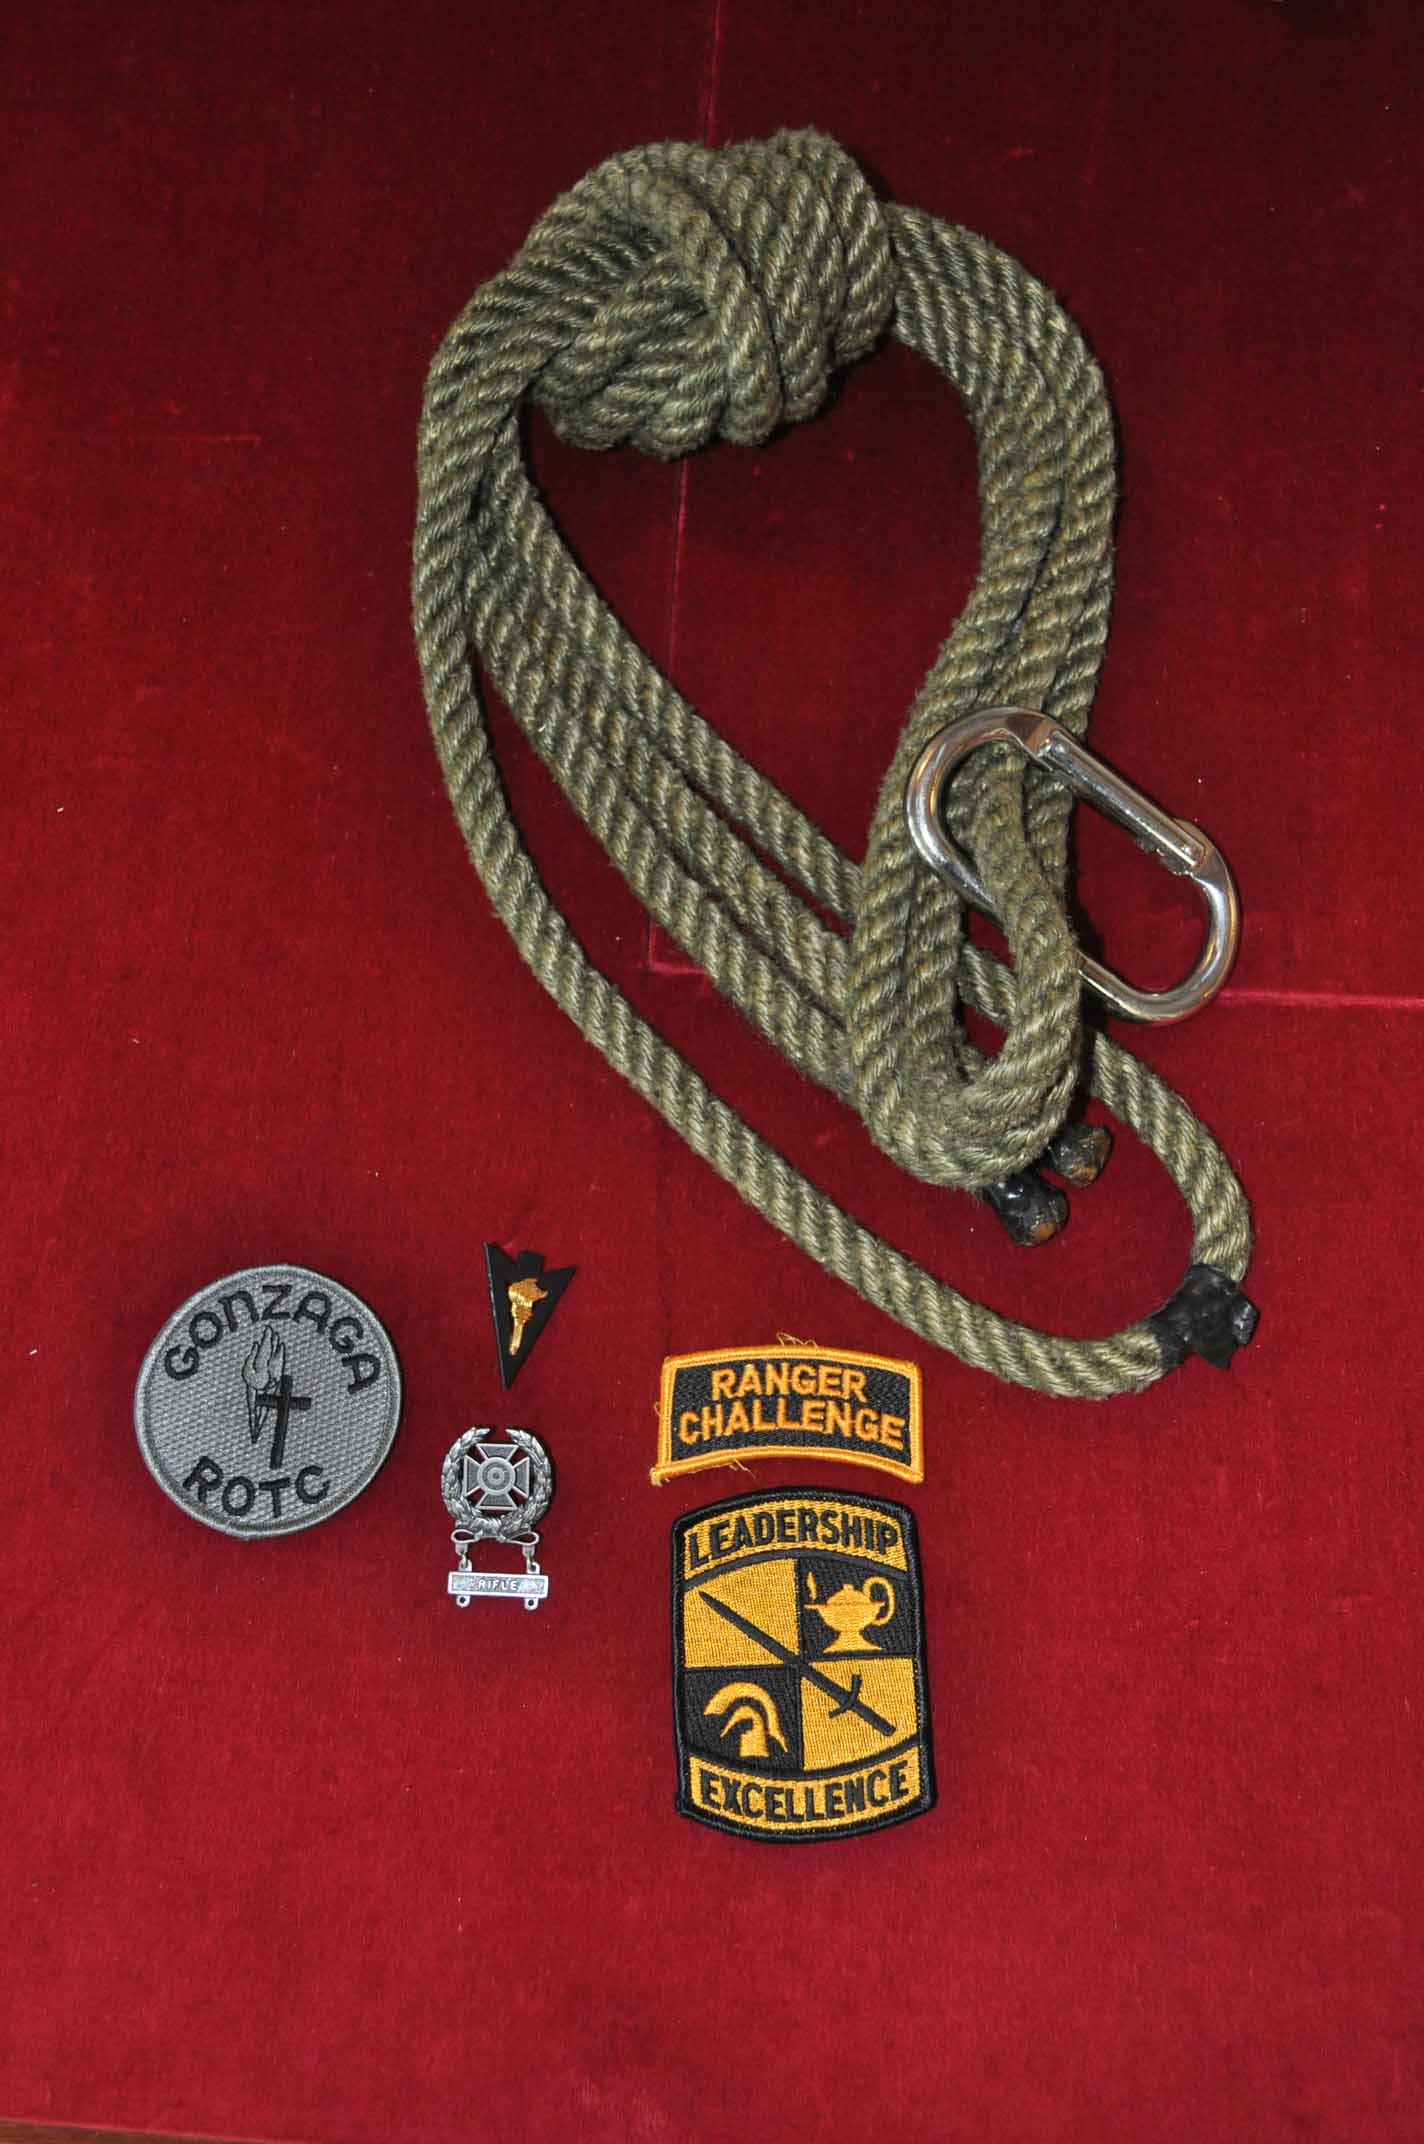 Cadet artifacts, 1960s to present